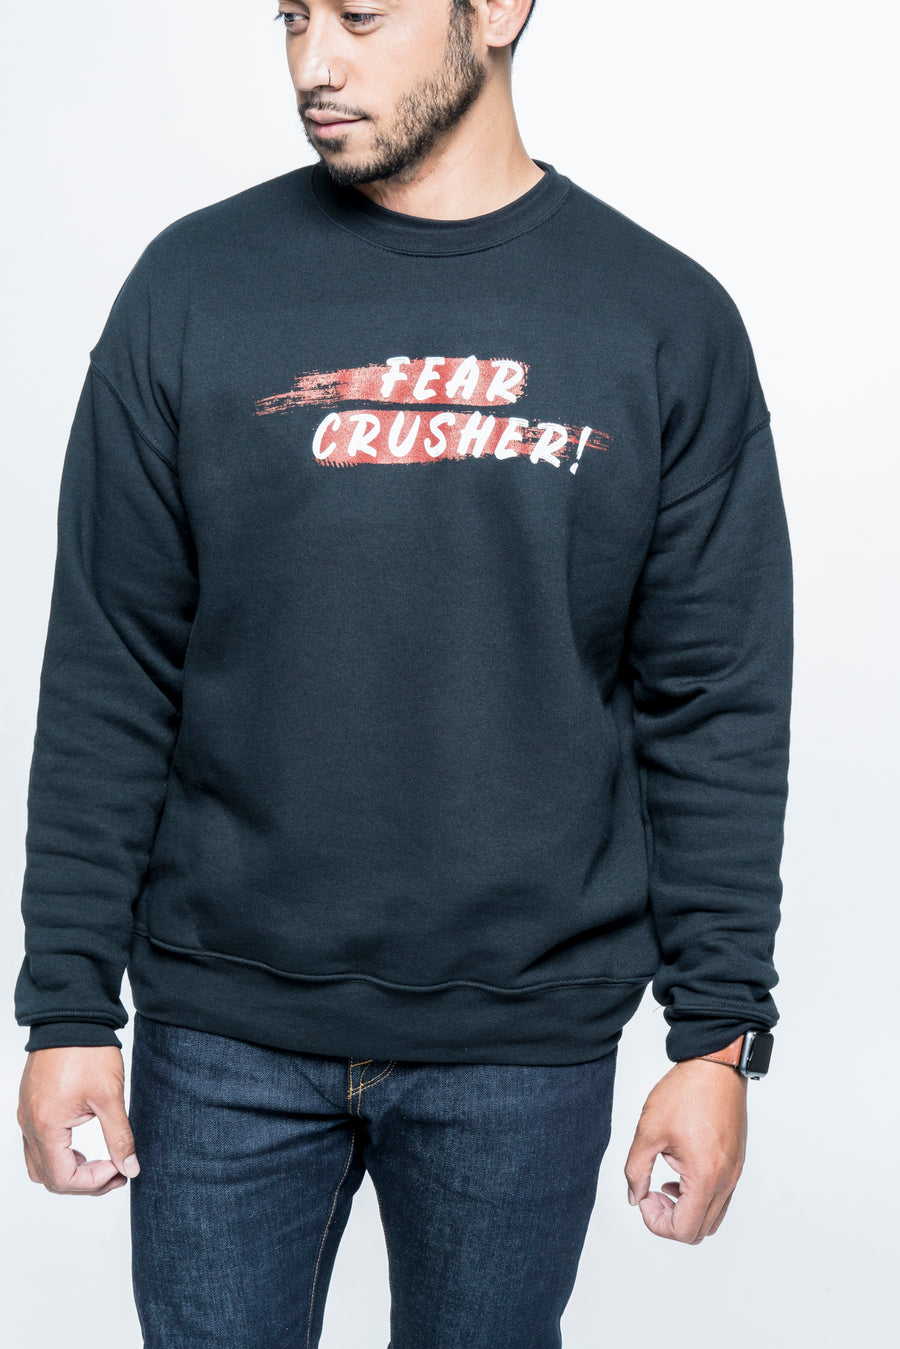 Fear Crusher Sweatshirt